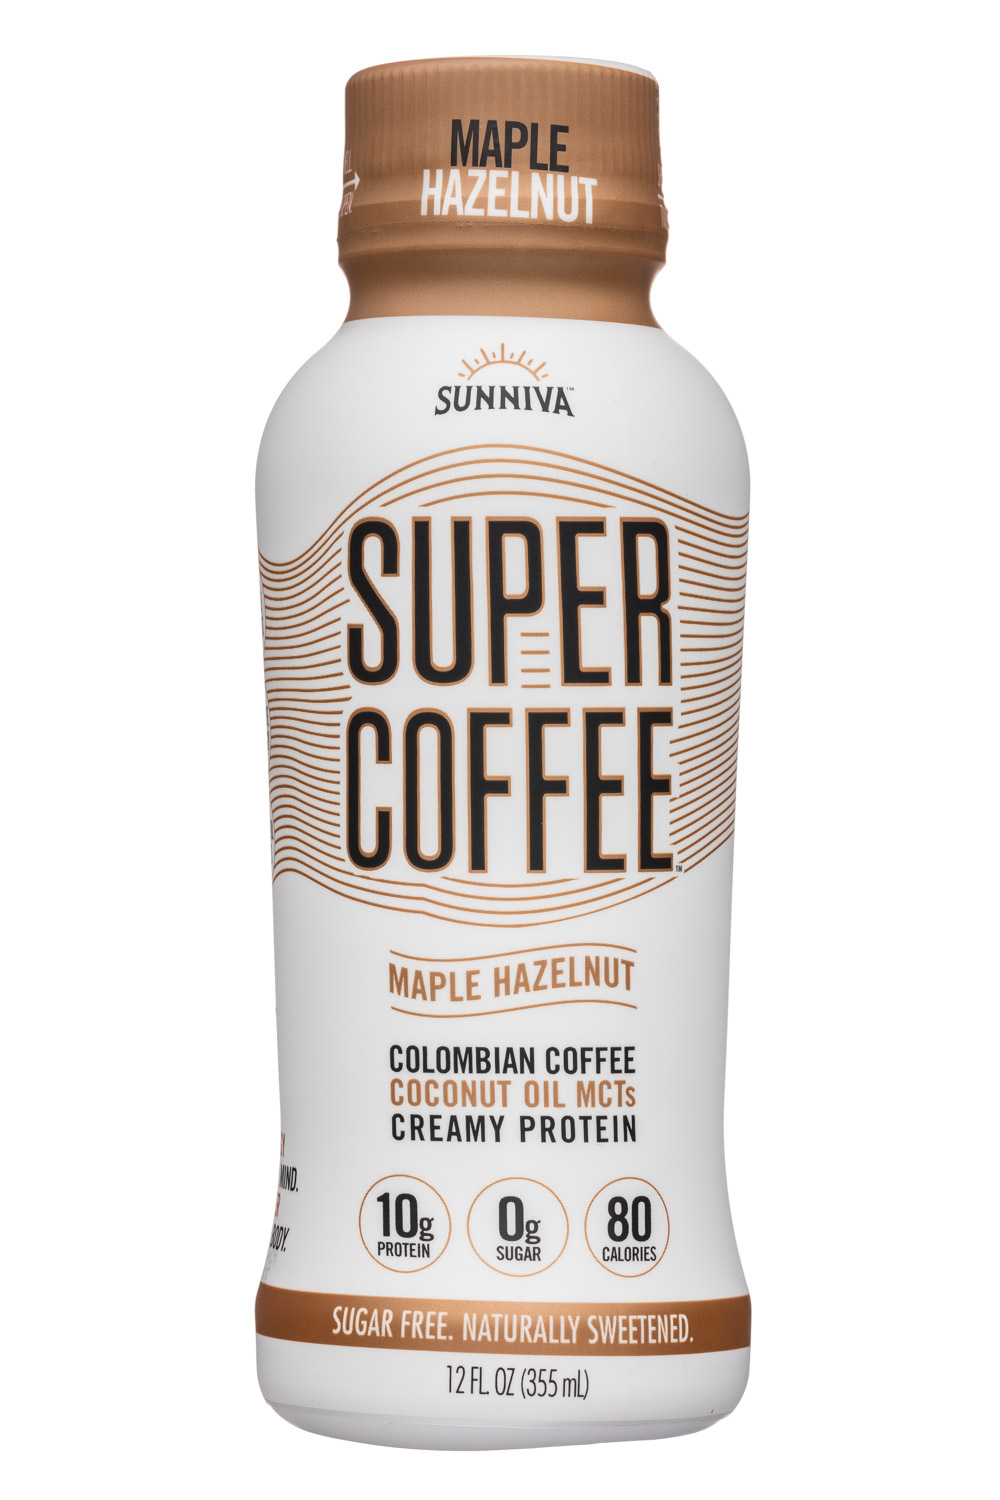 Super Coffee - Maple Hazelnut